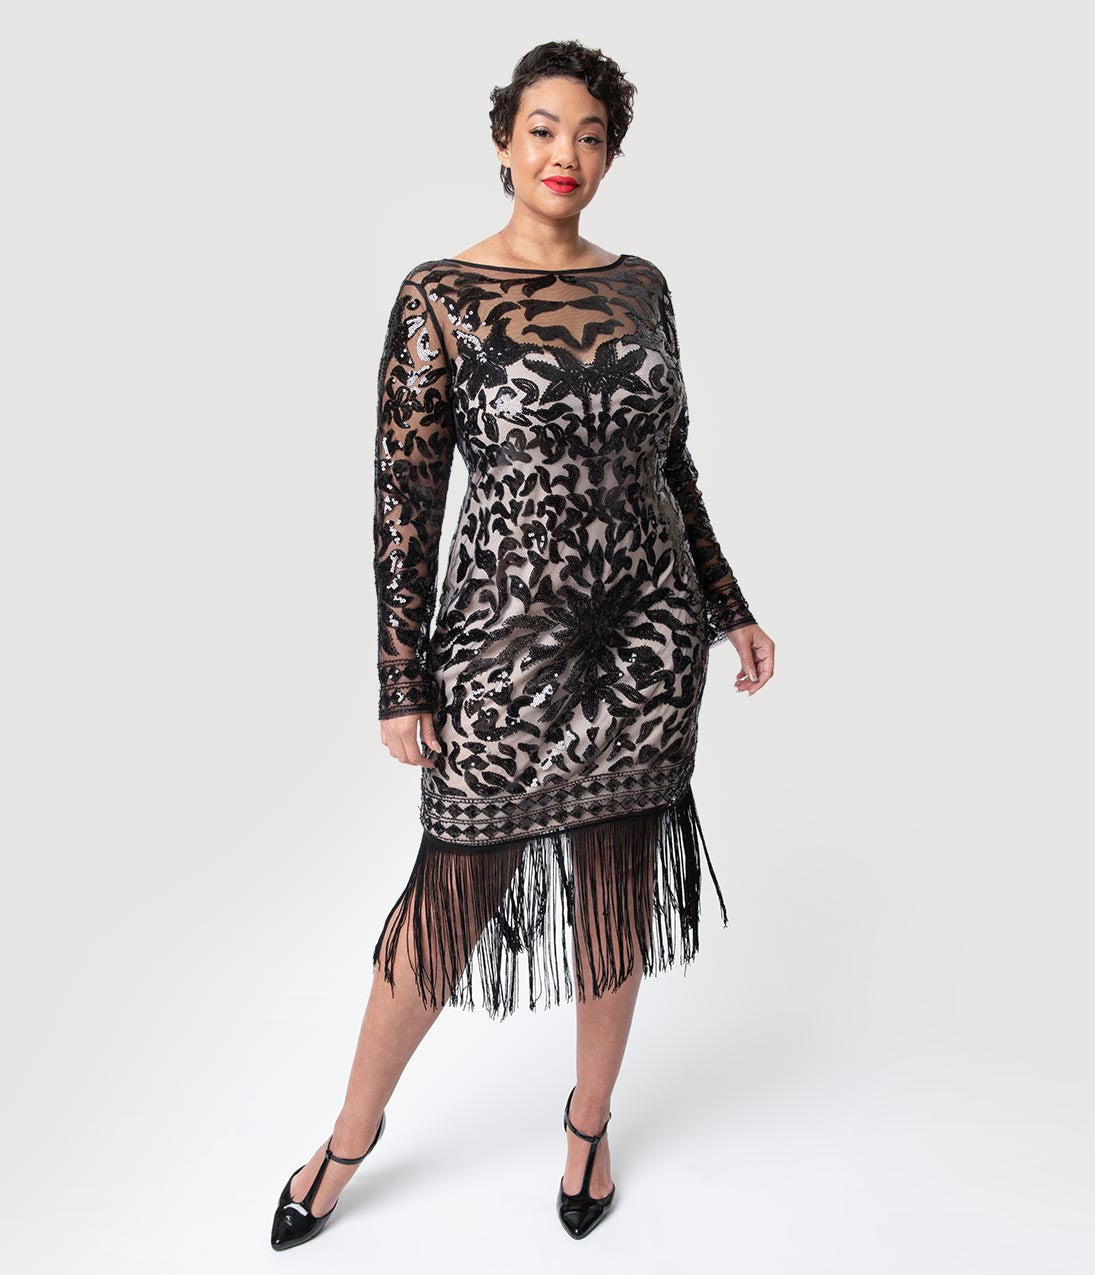 1920s Plus Size Flapper Dresses, Gatsby Dresses, Flapper Costumes Unique Vintage Plus Size 1920S Beige  Black Sequin Long Sleeve Zulma Cocktail Dress $98.00 AT vintagedancer.com